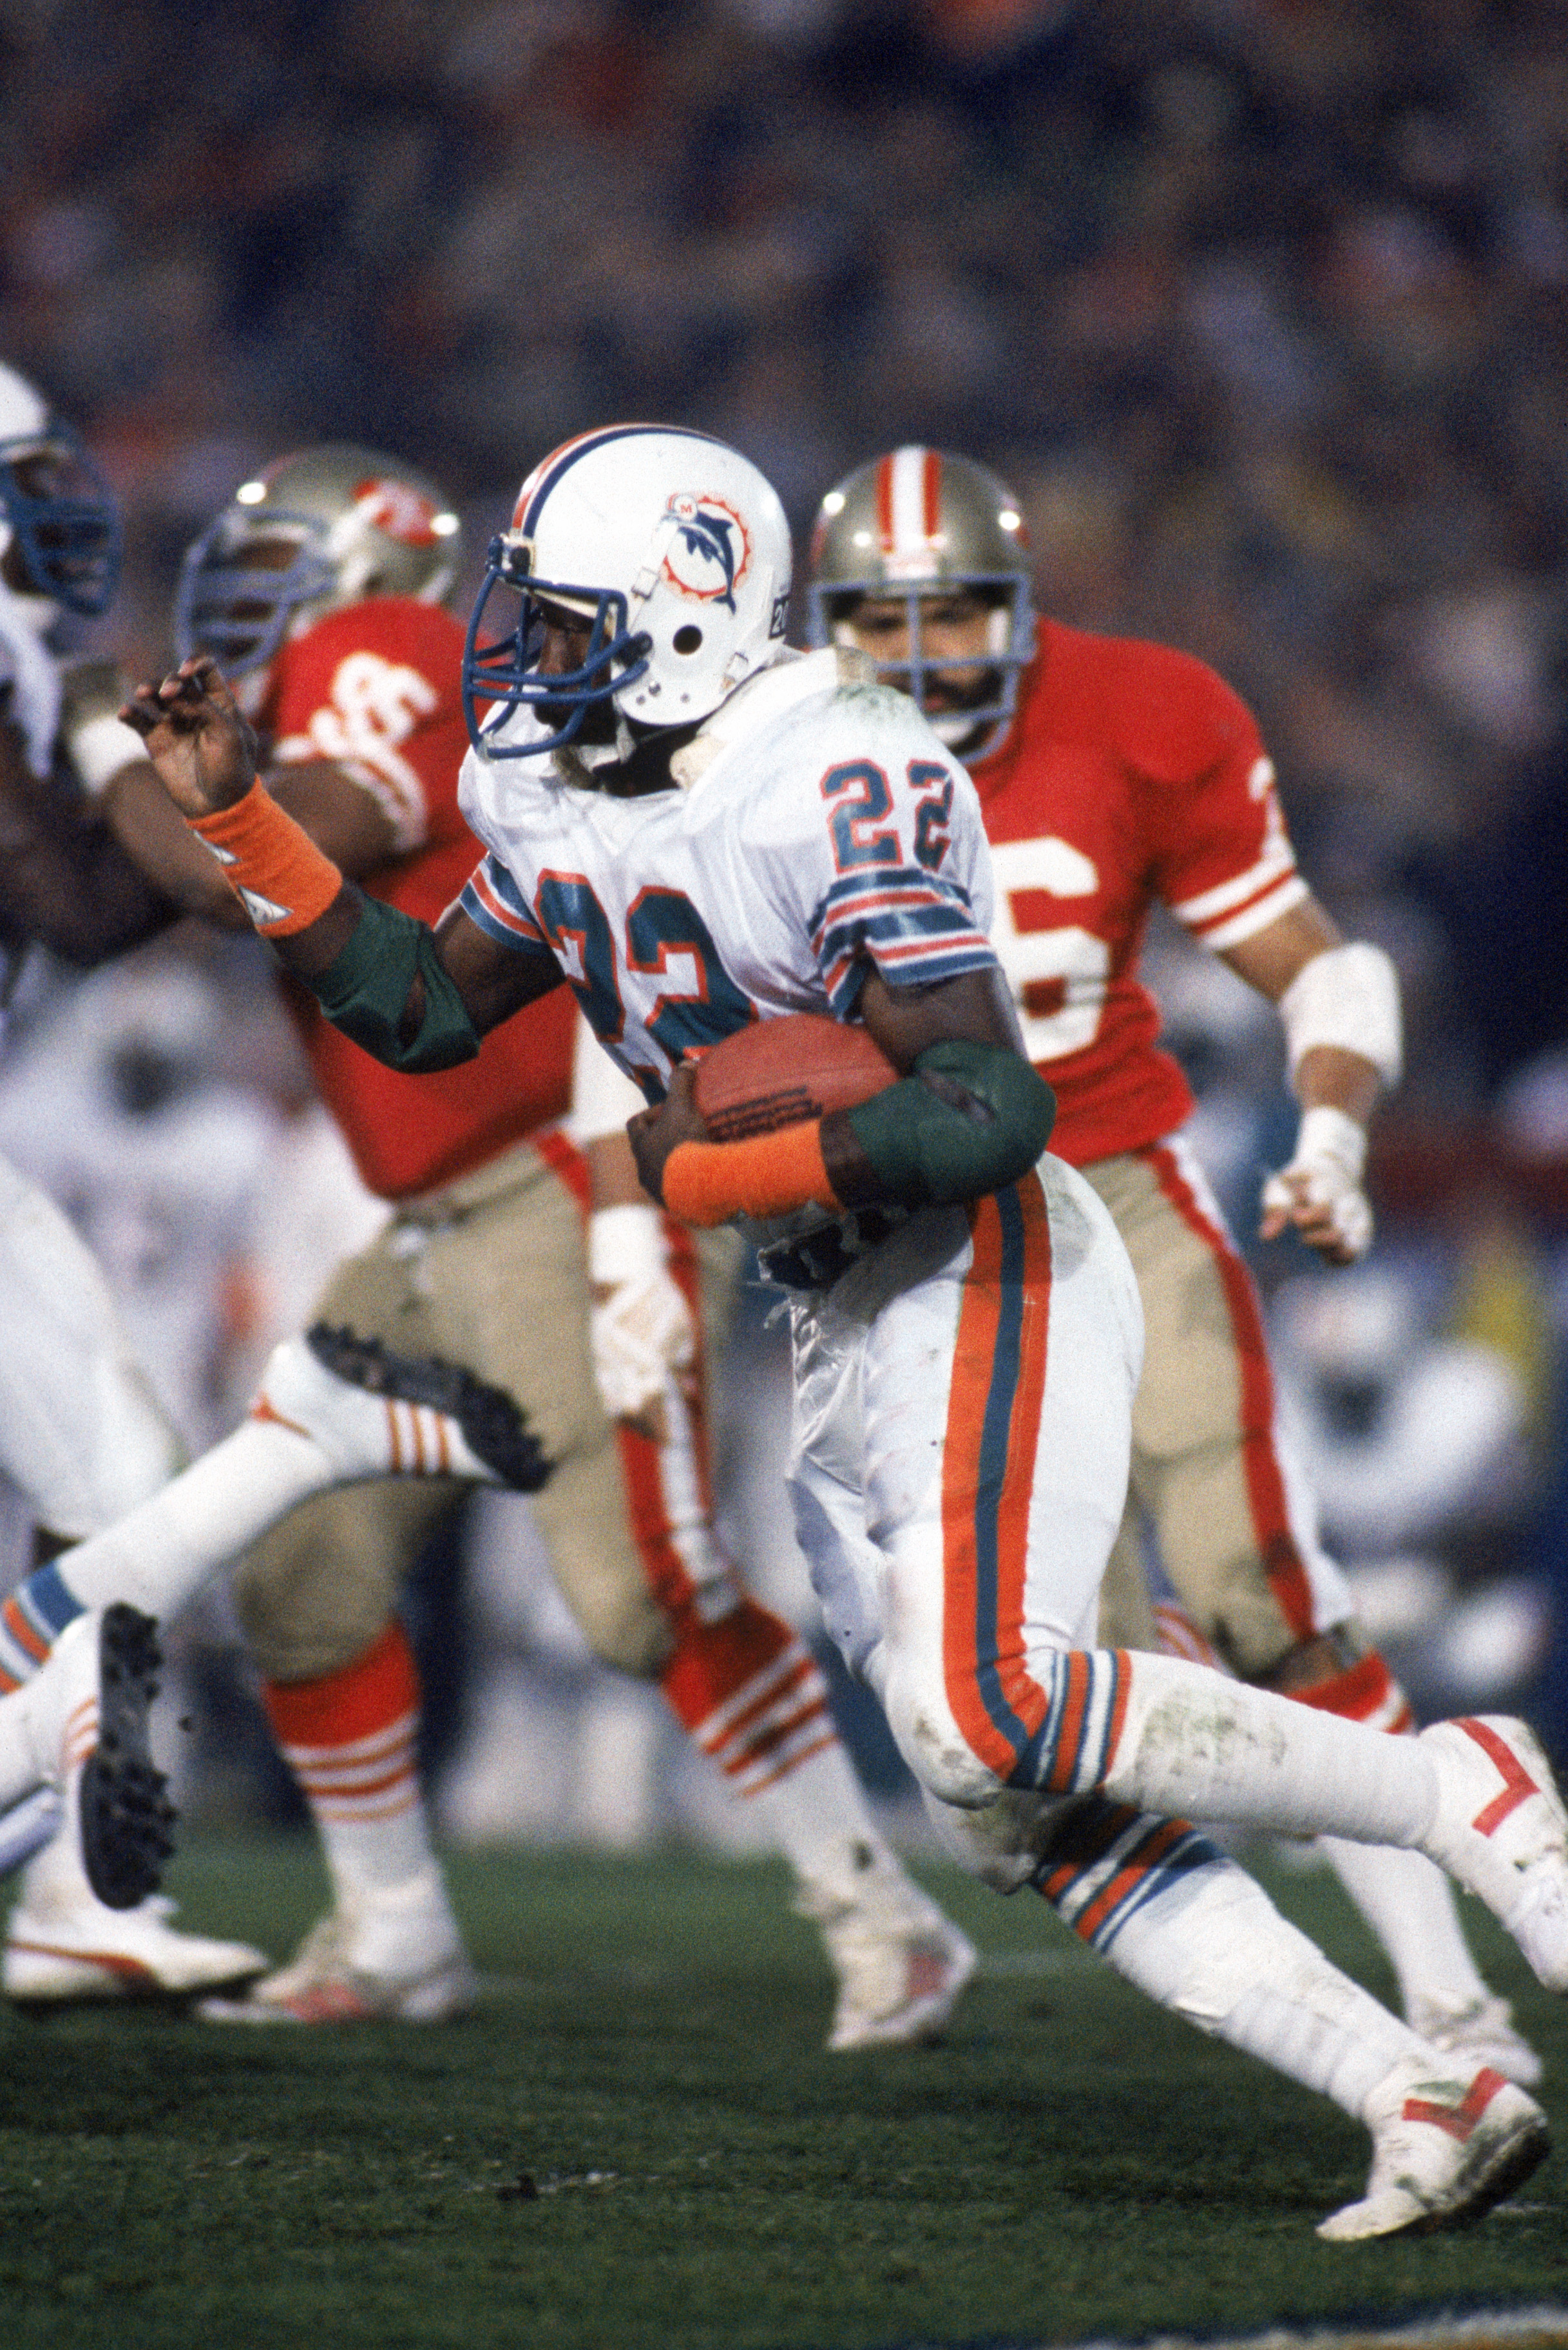 STANFORD, CA - JANUARY 20:  Running back Tony Nathan #22 of the Miami Dolphins rushes for yards during Super Bowl XIX against the San Francisco 49ers at Stanford Stadium on January 20, 1985 in Stanford, California.   The 49ers won 38-16.  (Photo by George